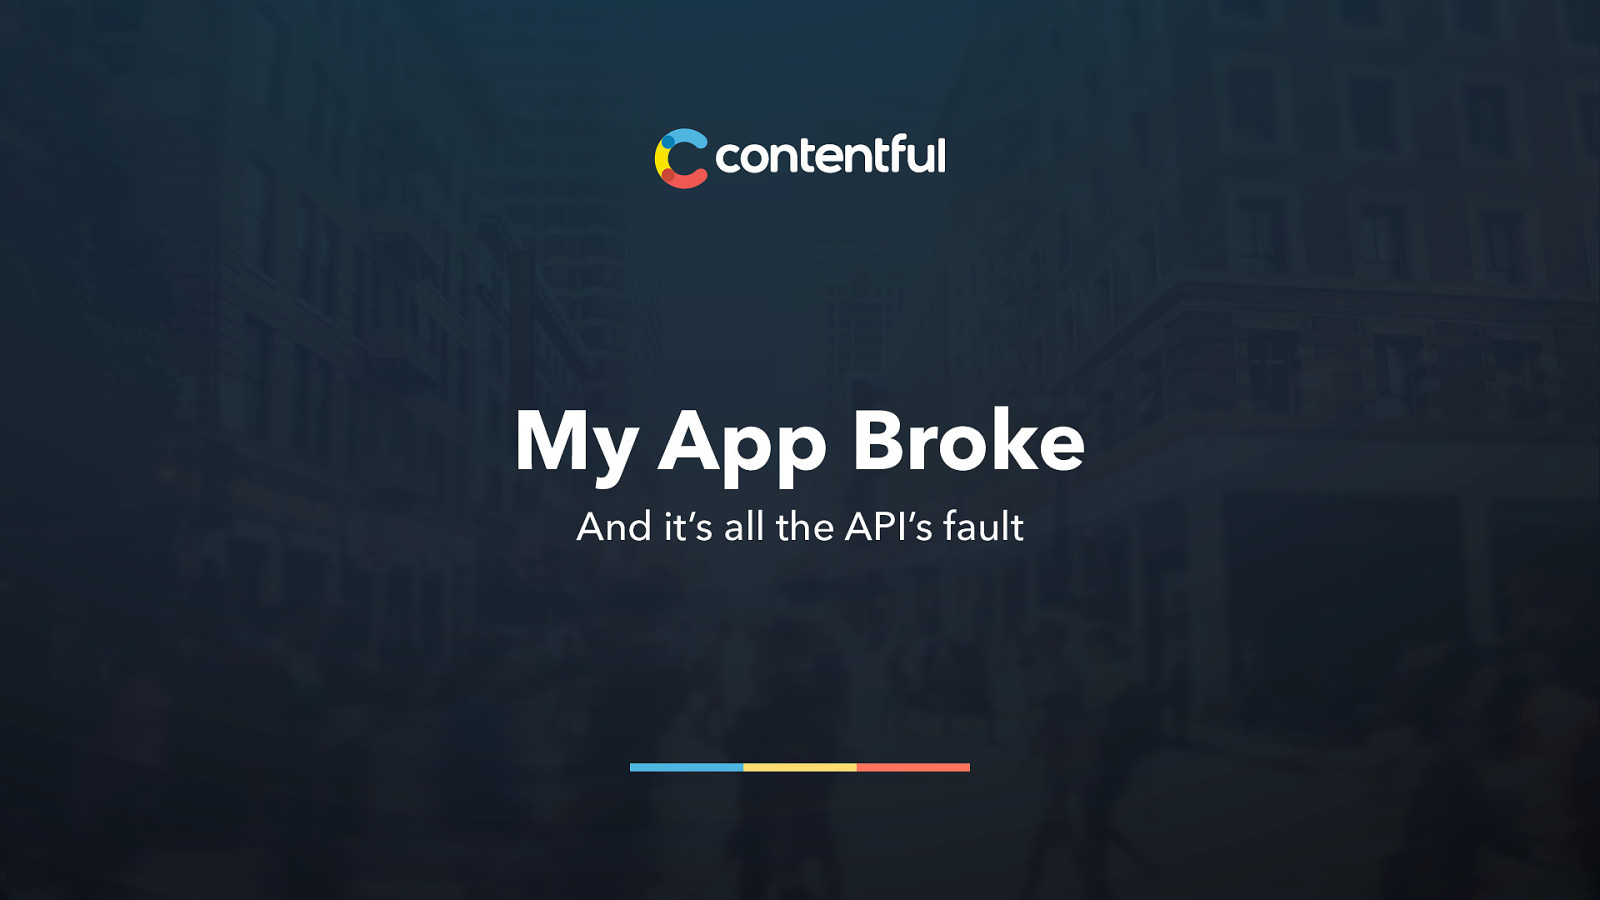 My App Broke. . . And it's the API's fault.